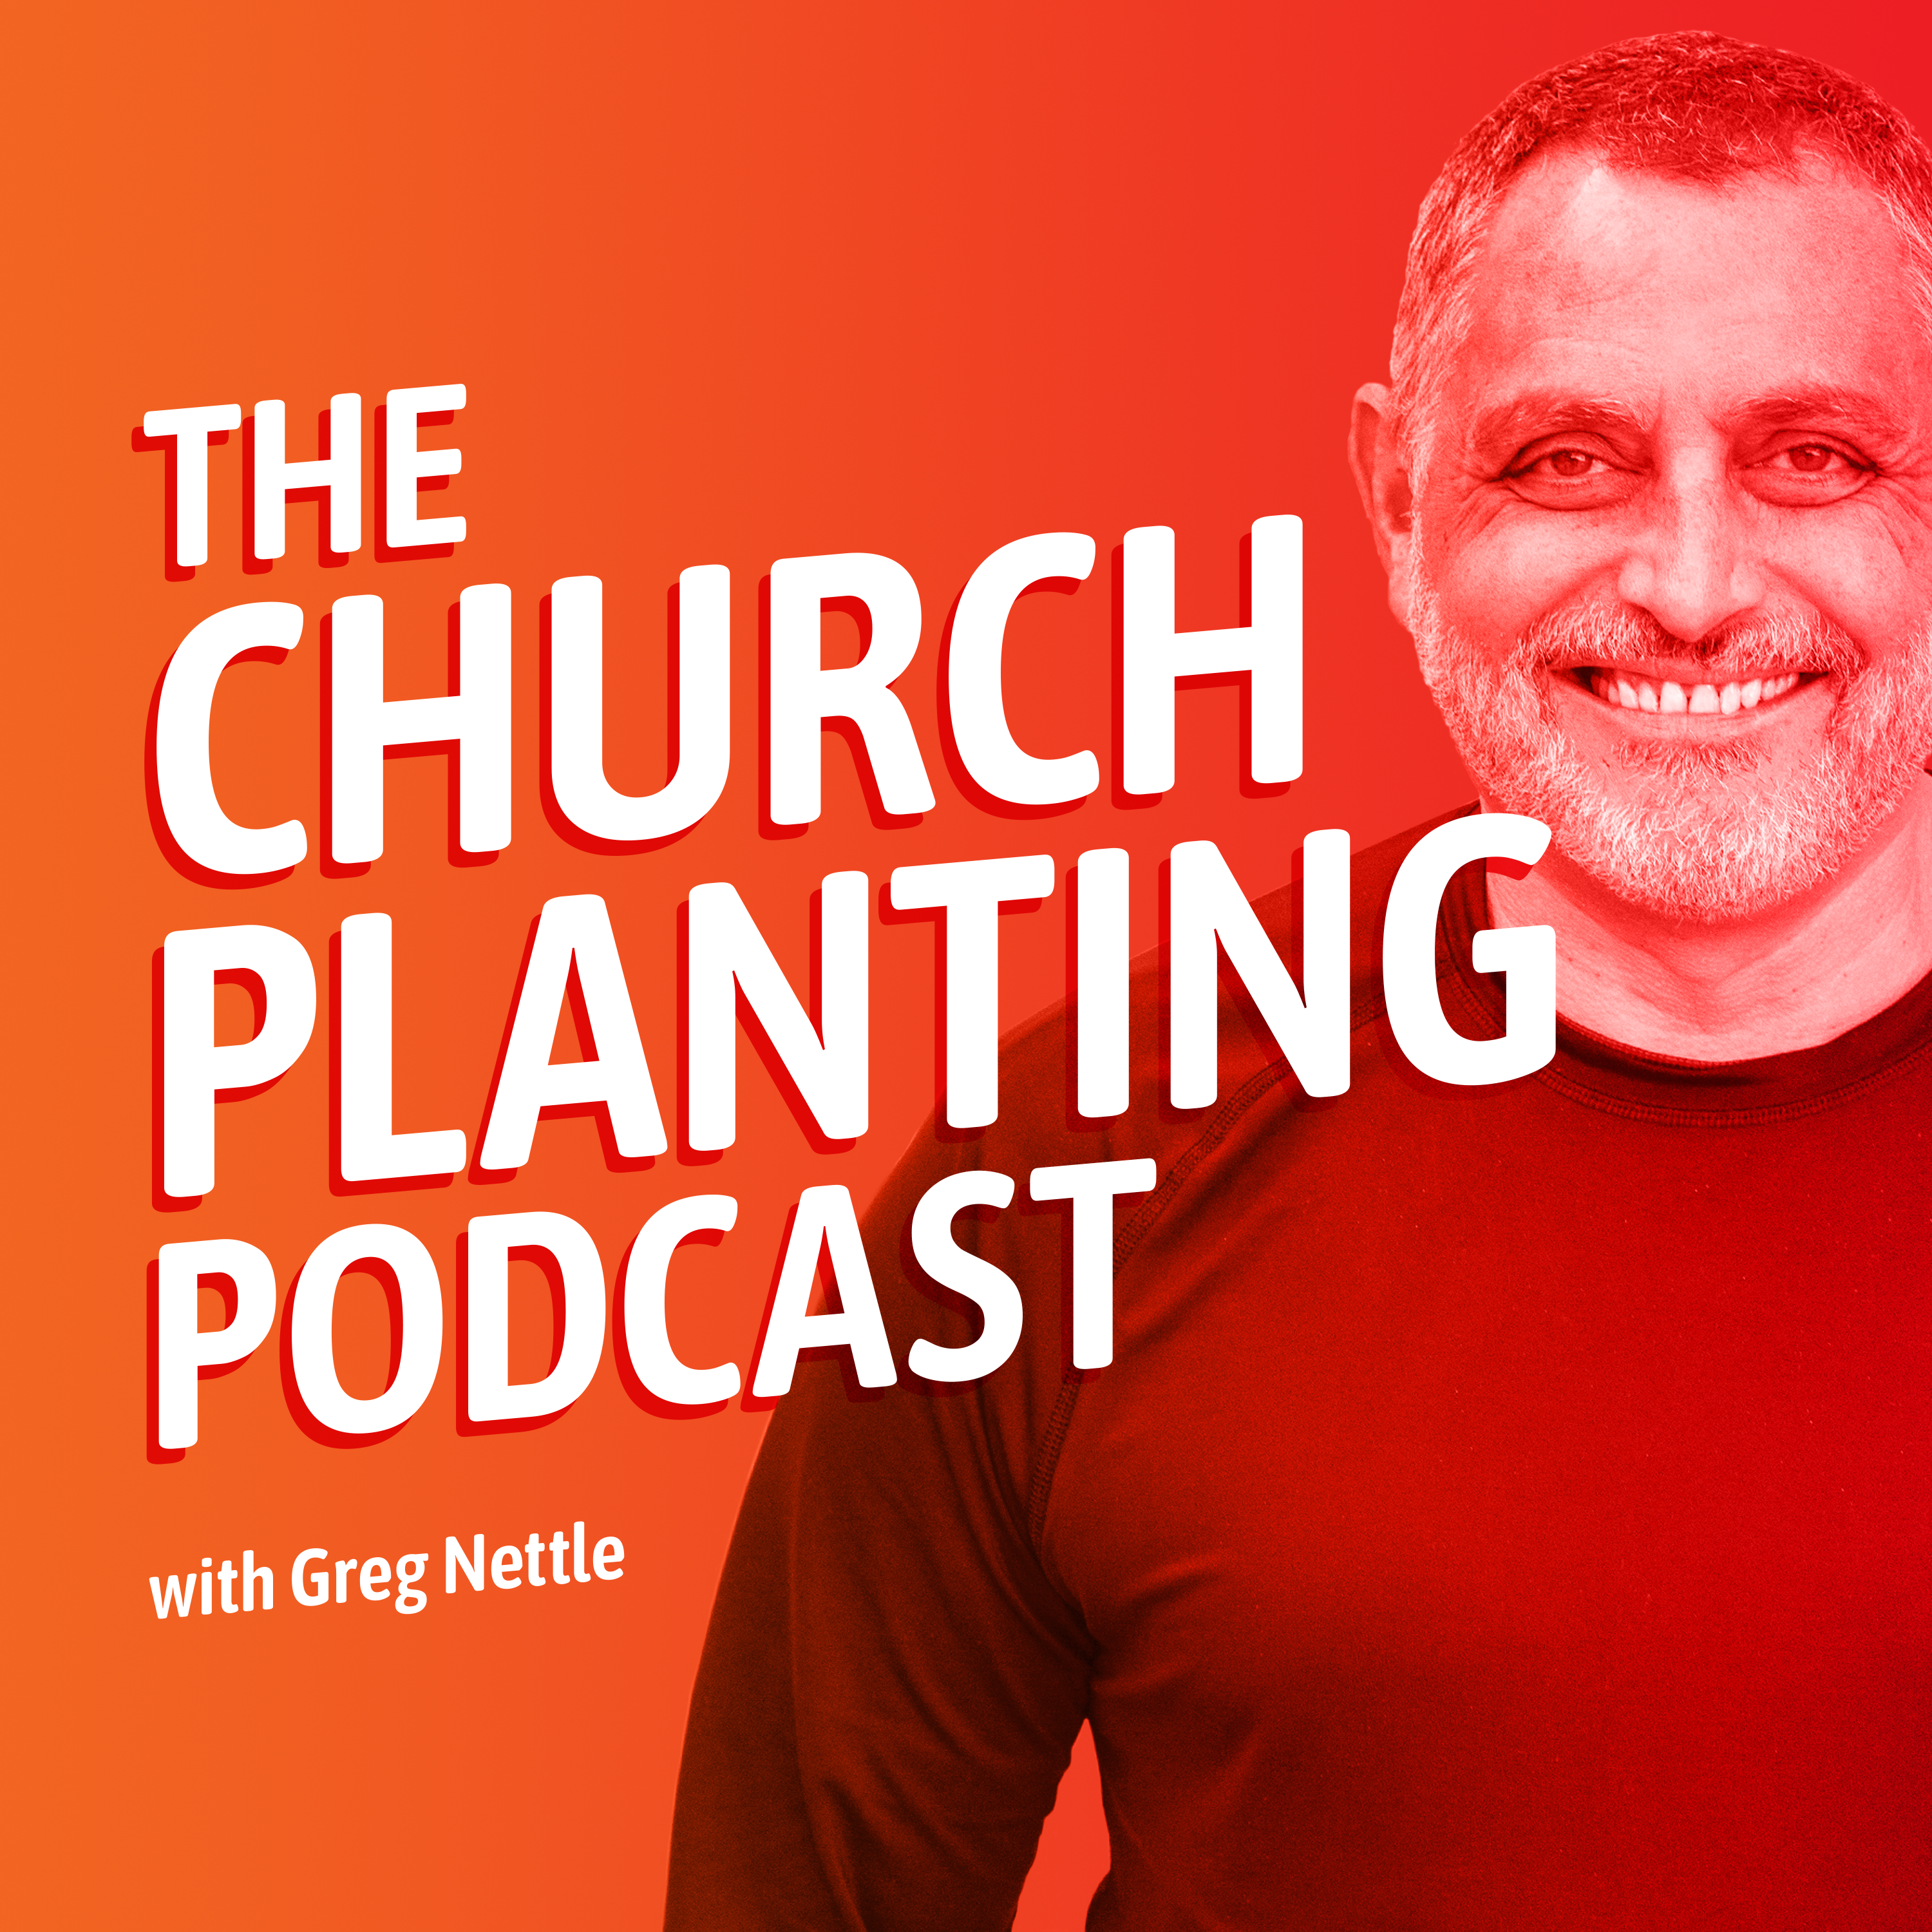 The Church Planting Podcast with Greg Nettle show art